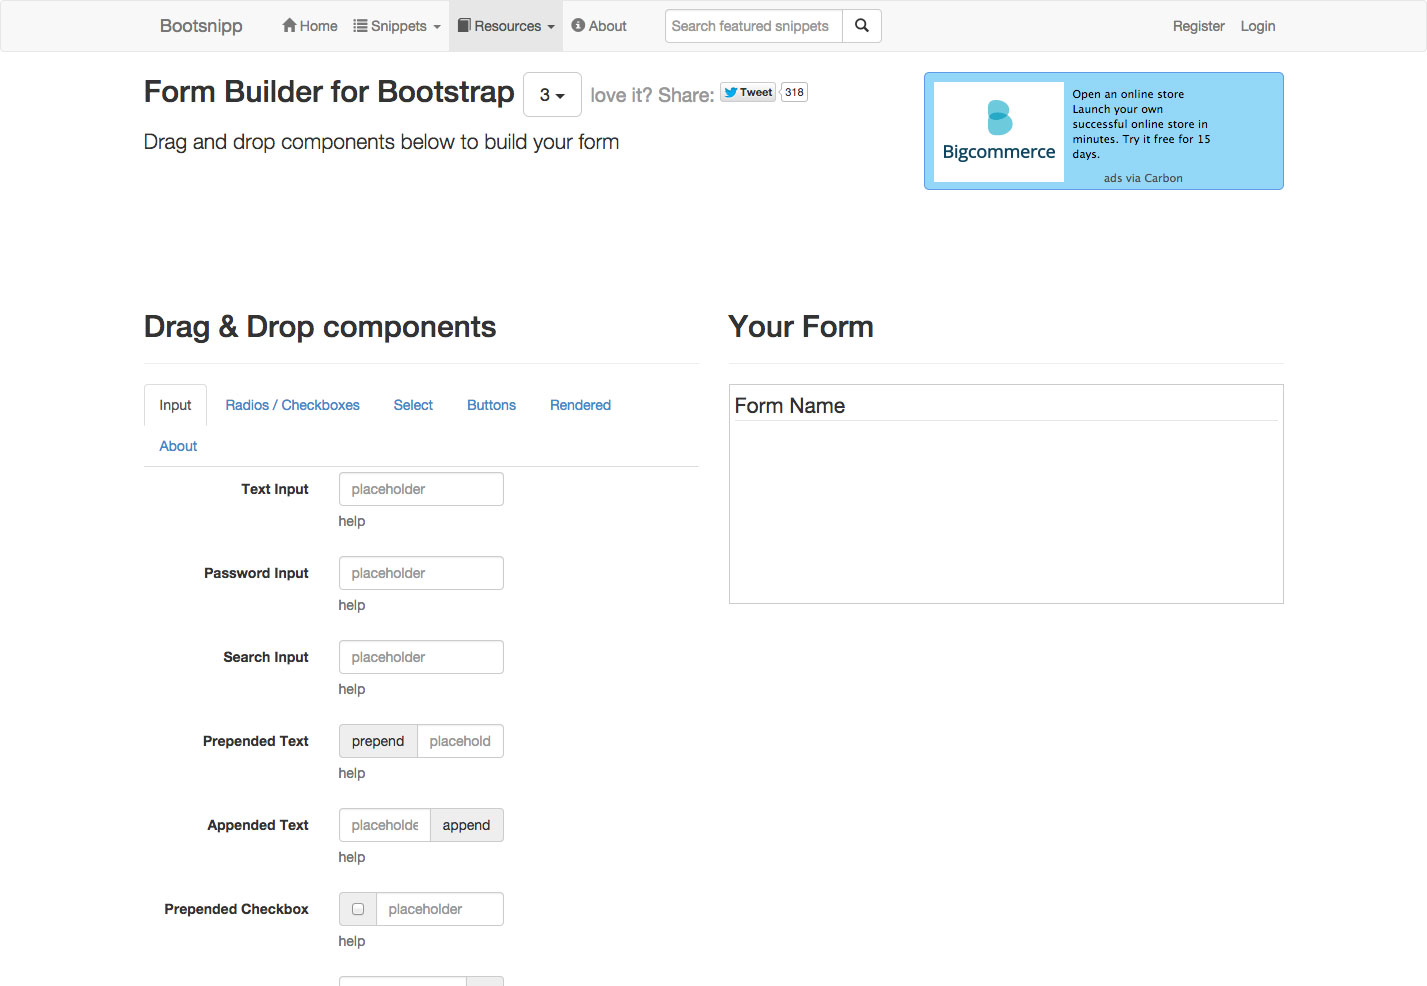 bootsnip form builder